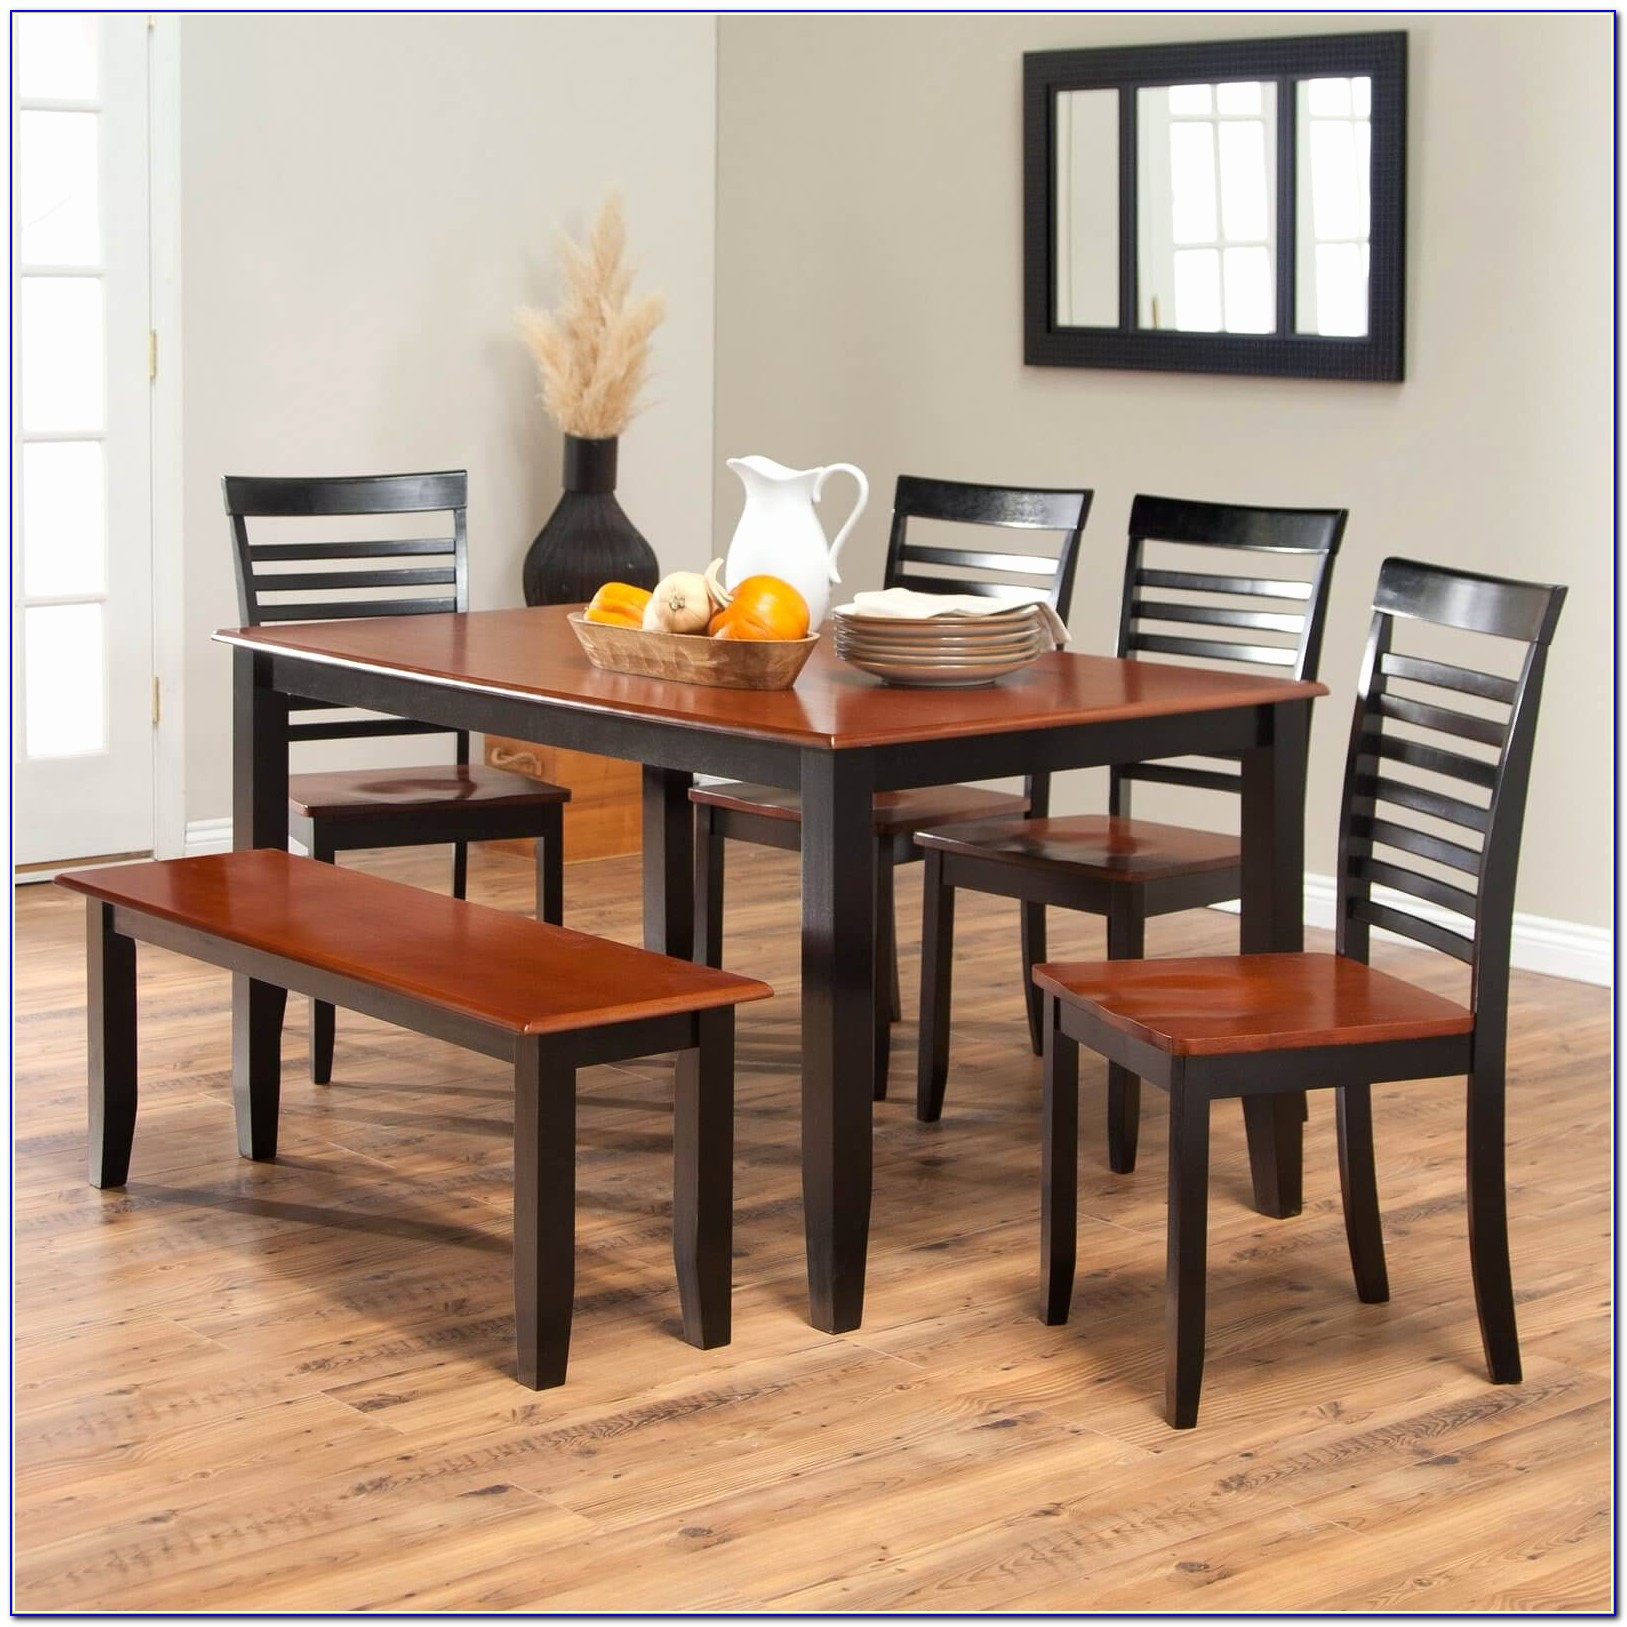 Bench Seat Dining Tables Melbourne